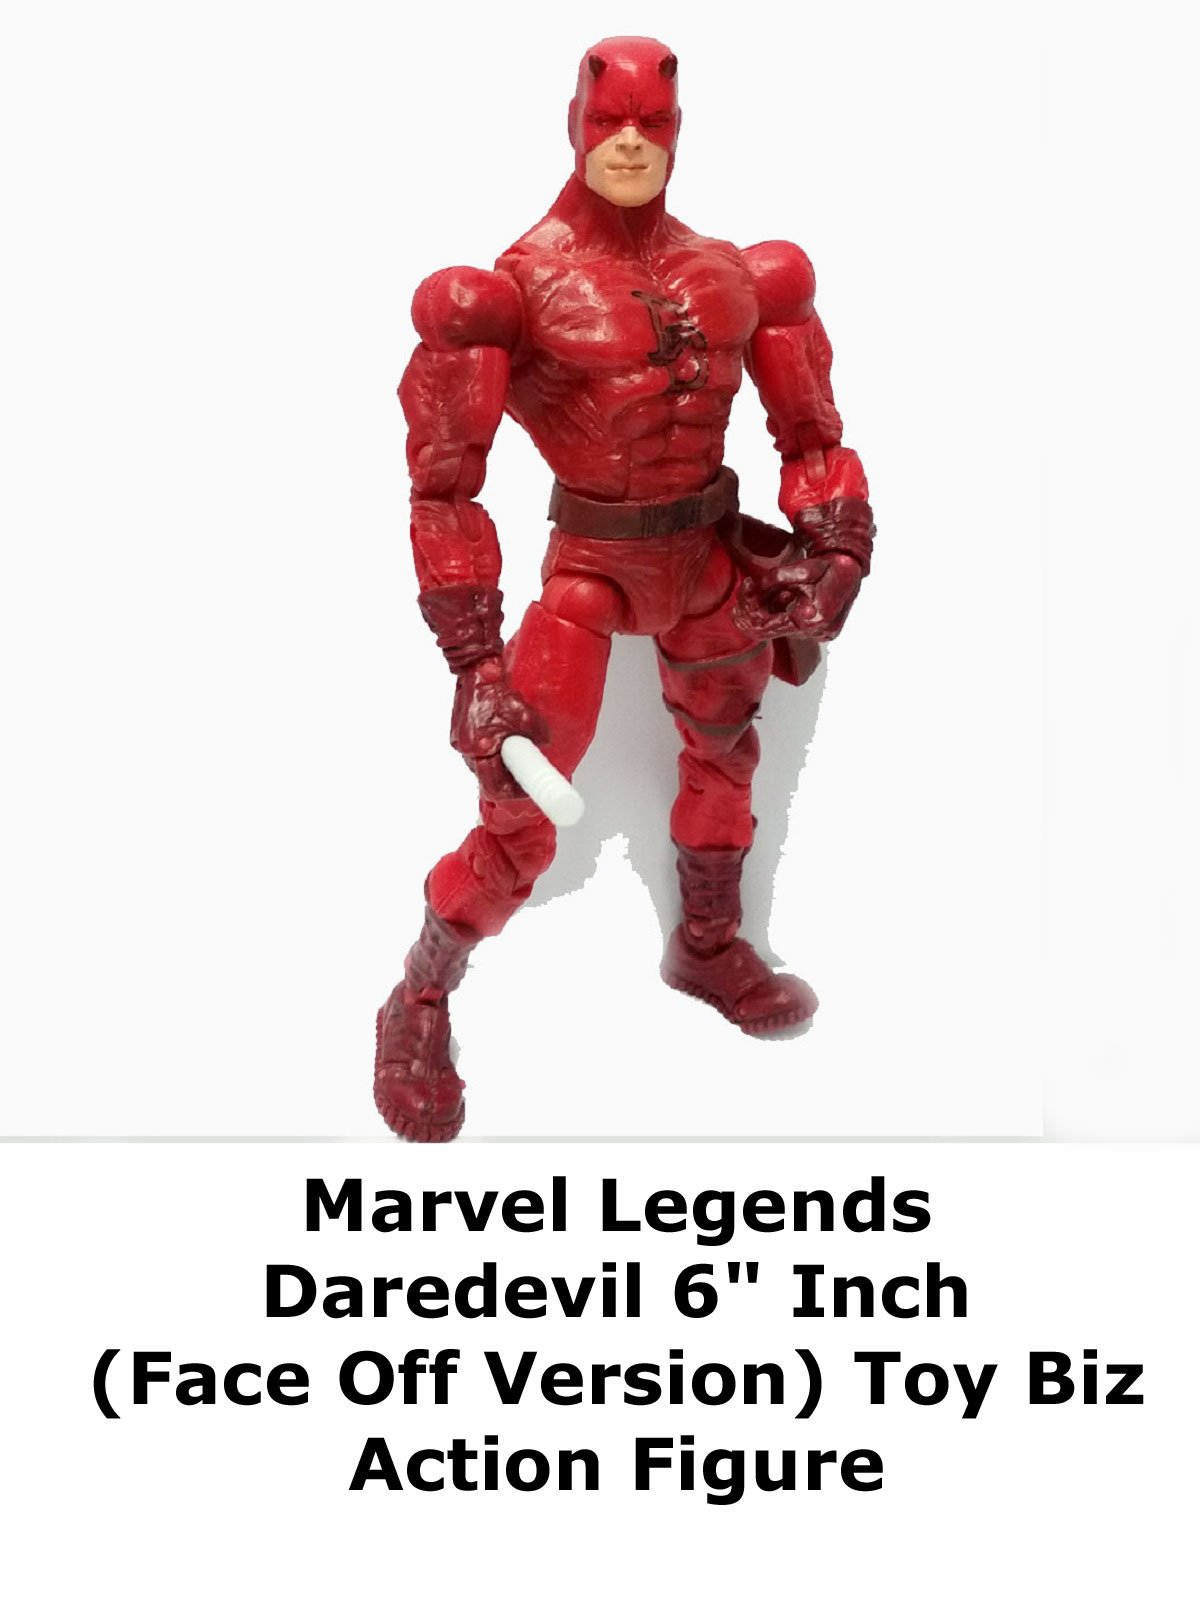 "Review: Marvel Legends Daredevil 6"" Inch (Face Off Version) Toy Biz Action Figure"